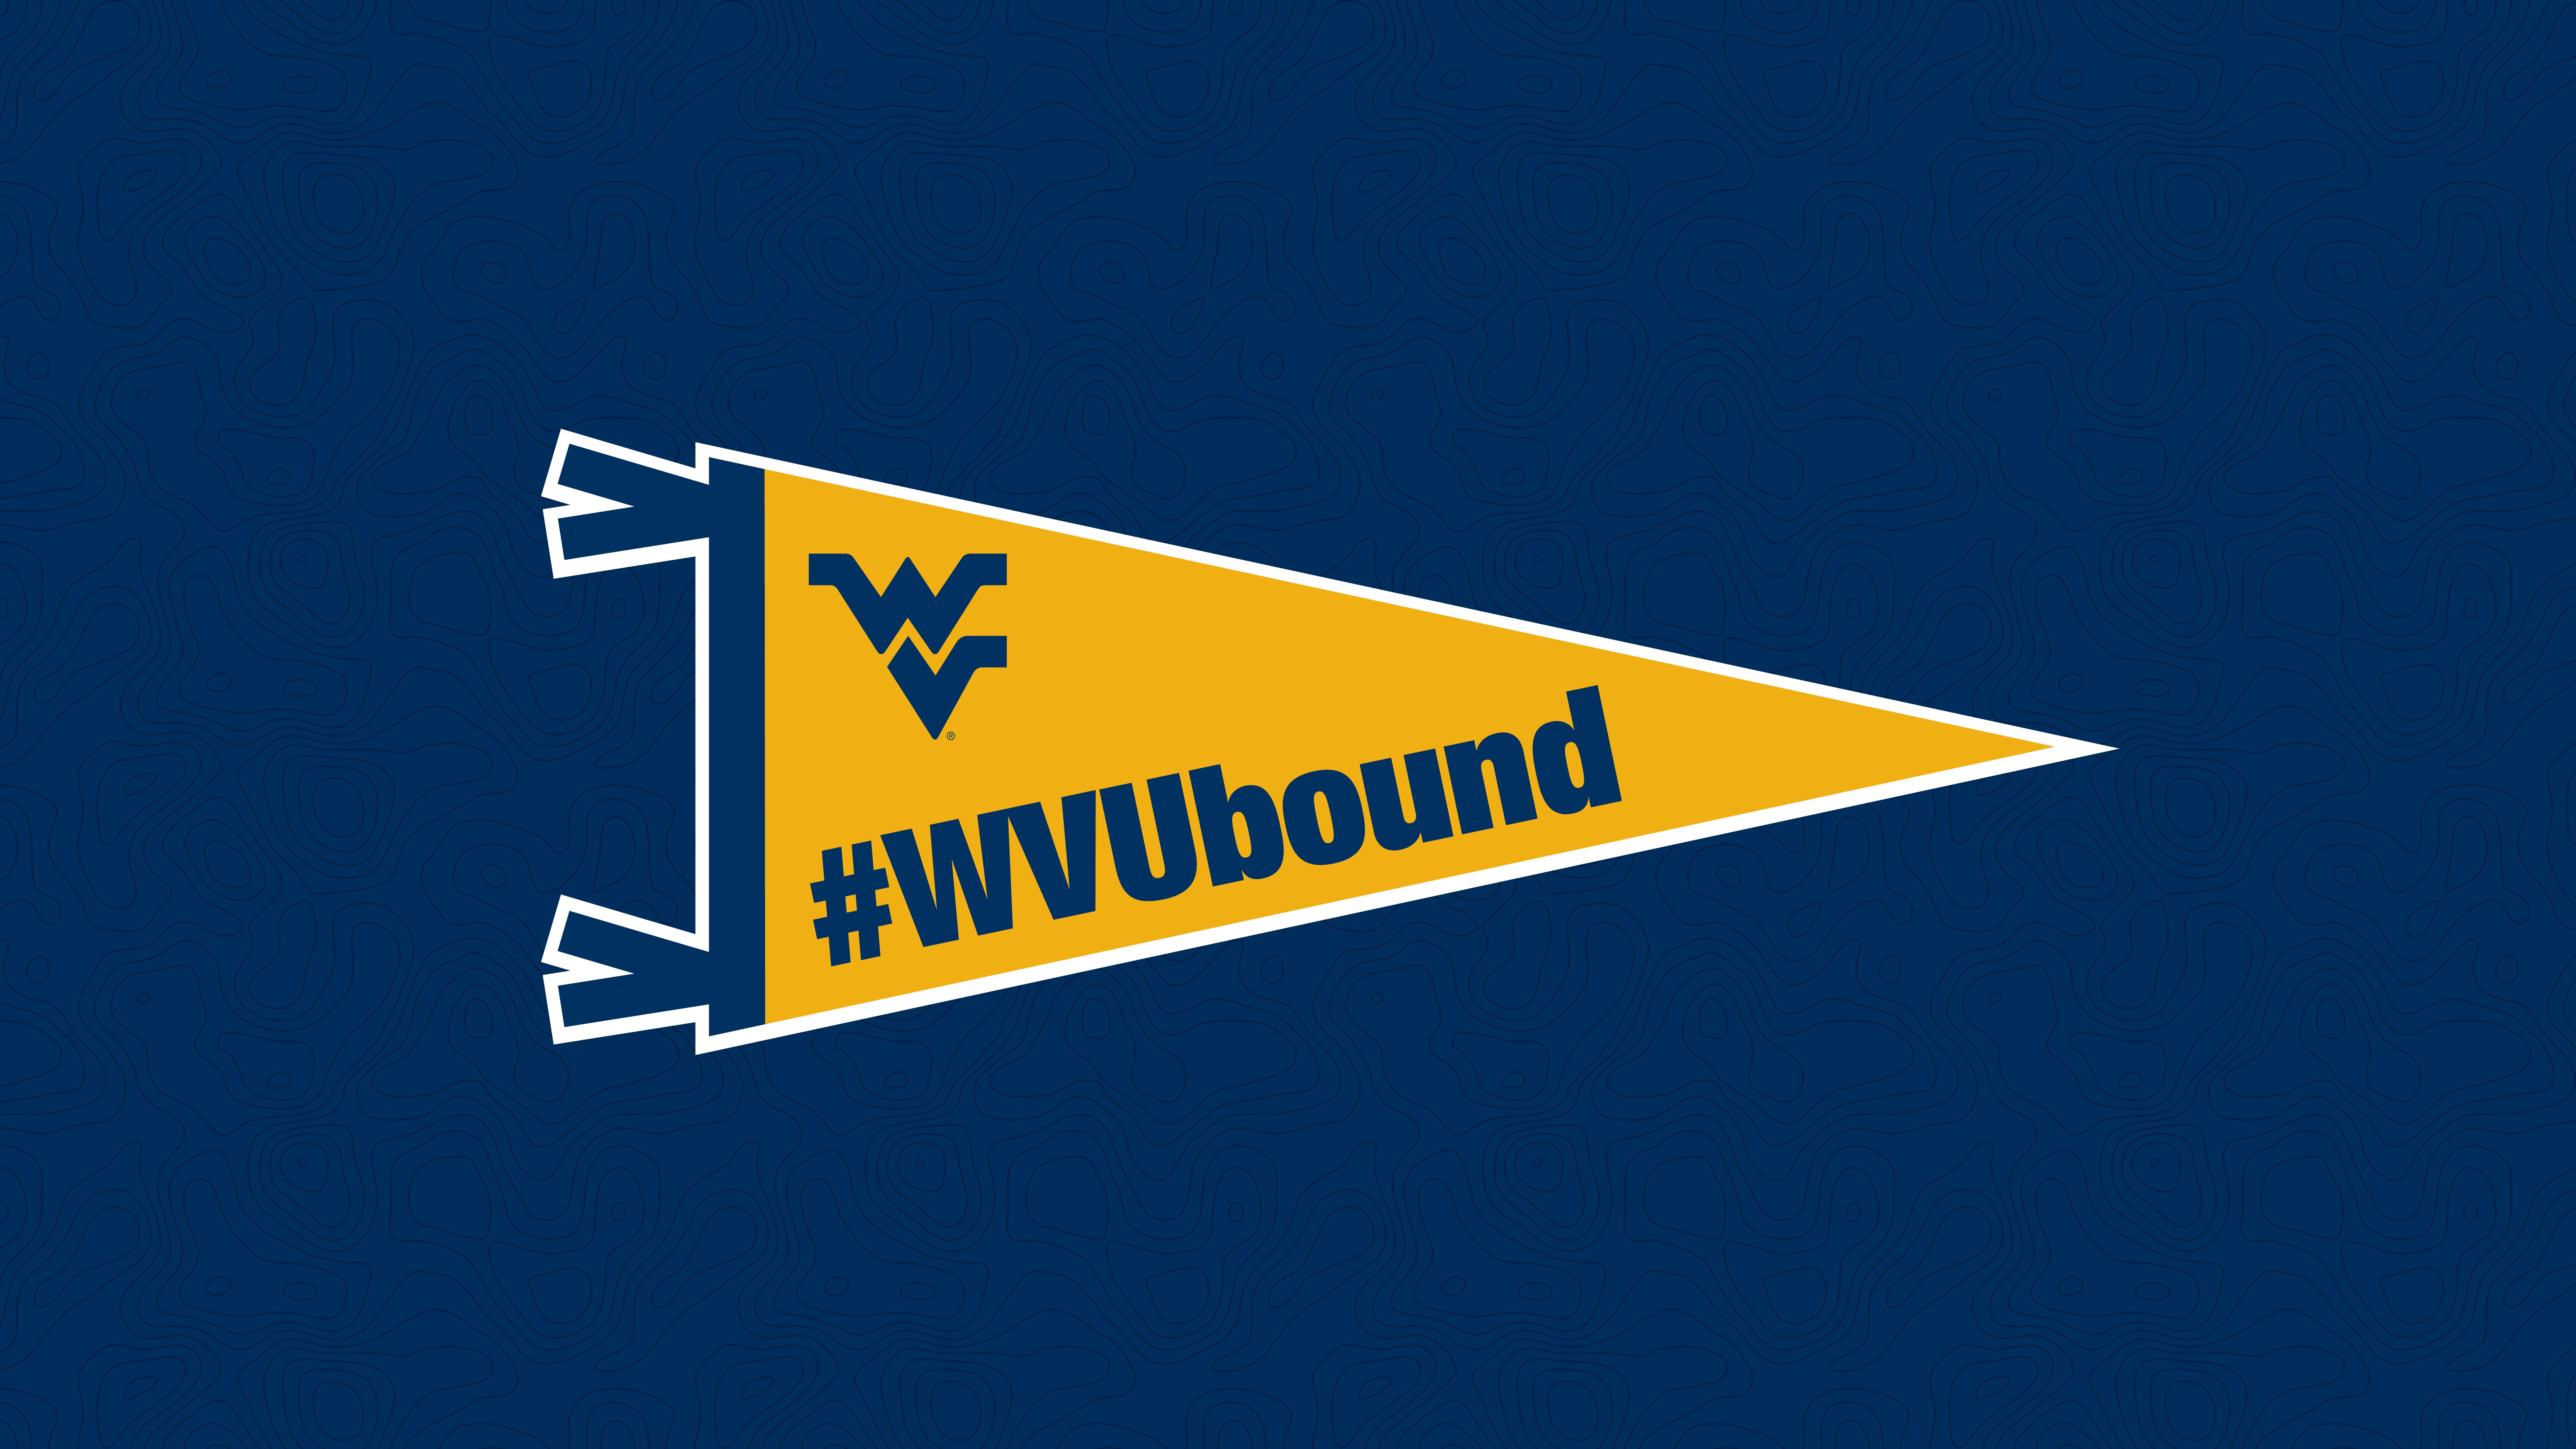 WVU Bound PC or tablet wallpaper